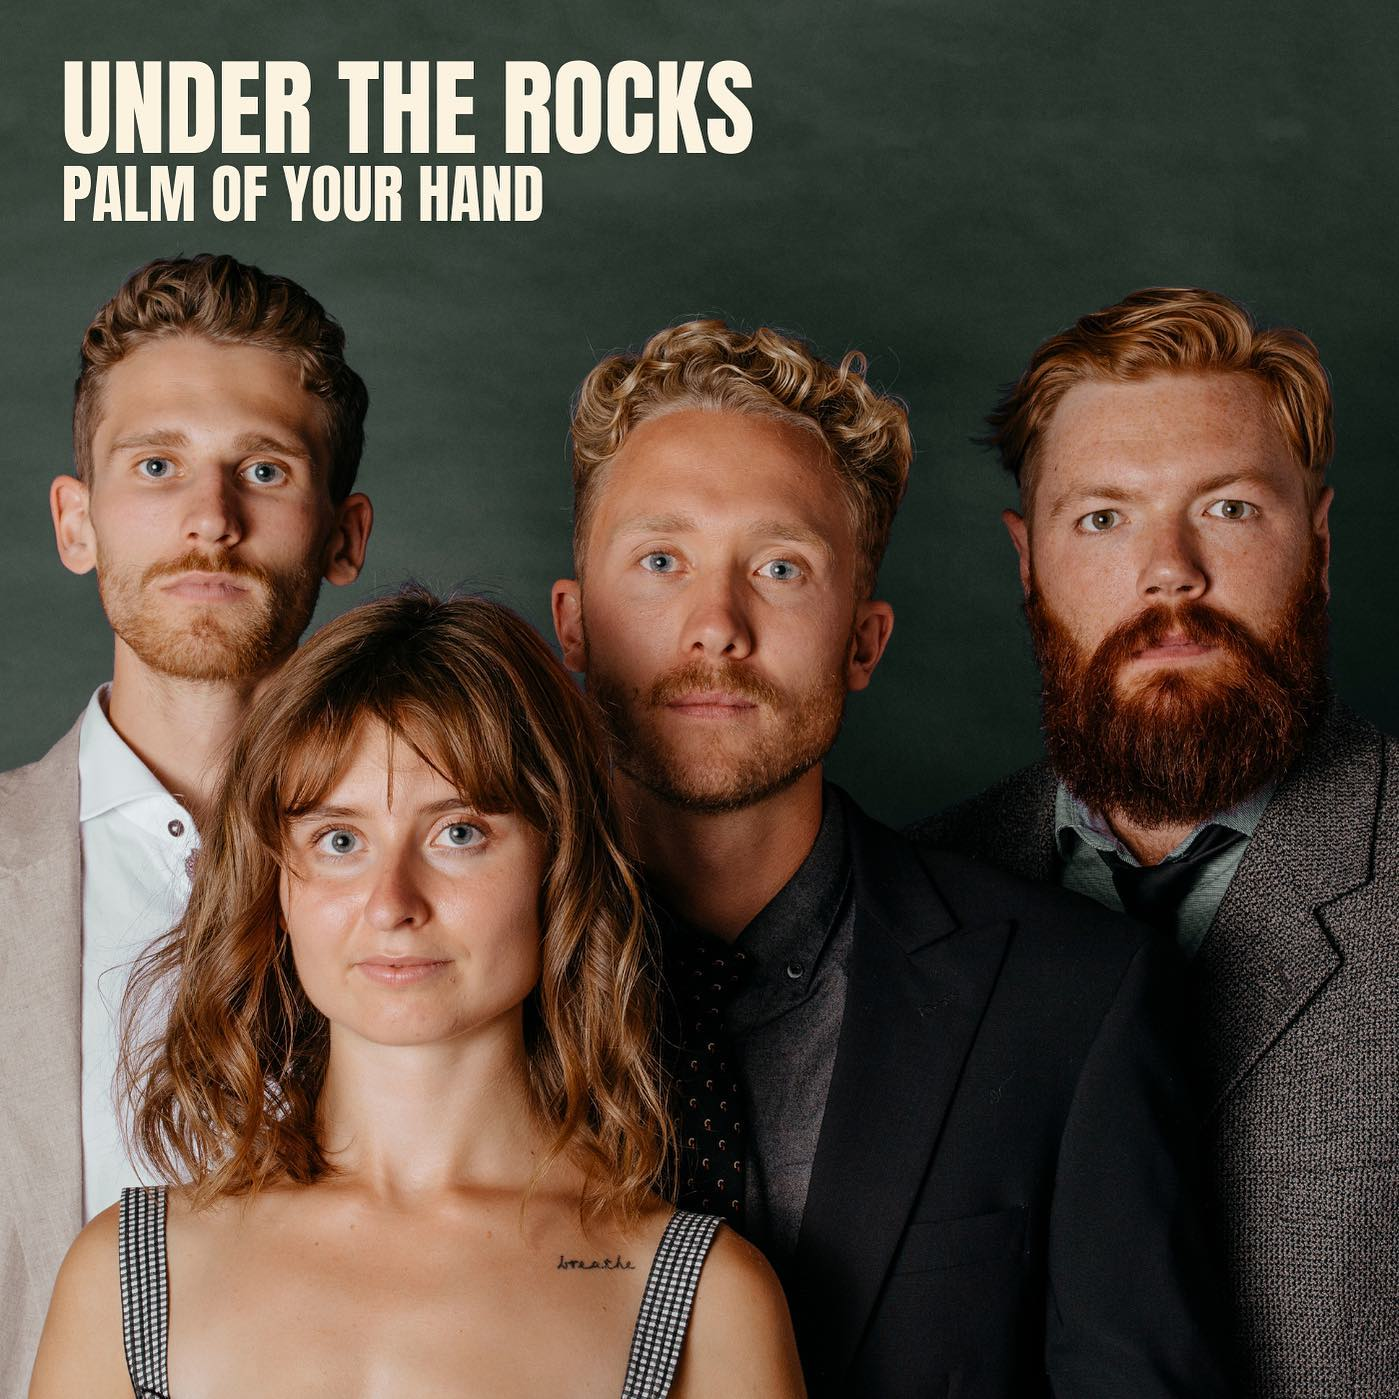 Under the Rocks – Palm of Your Hand